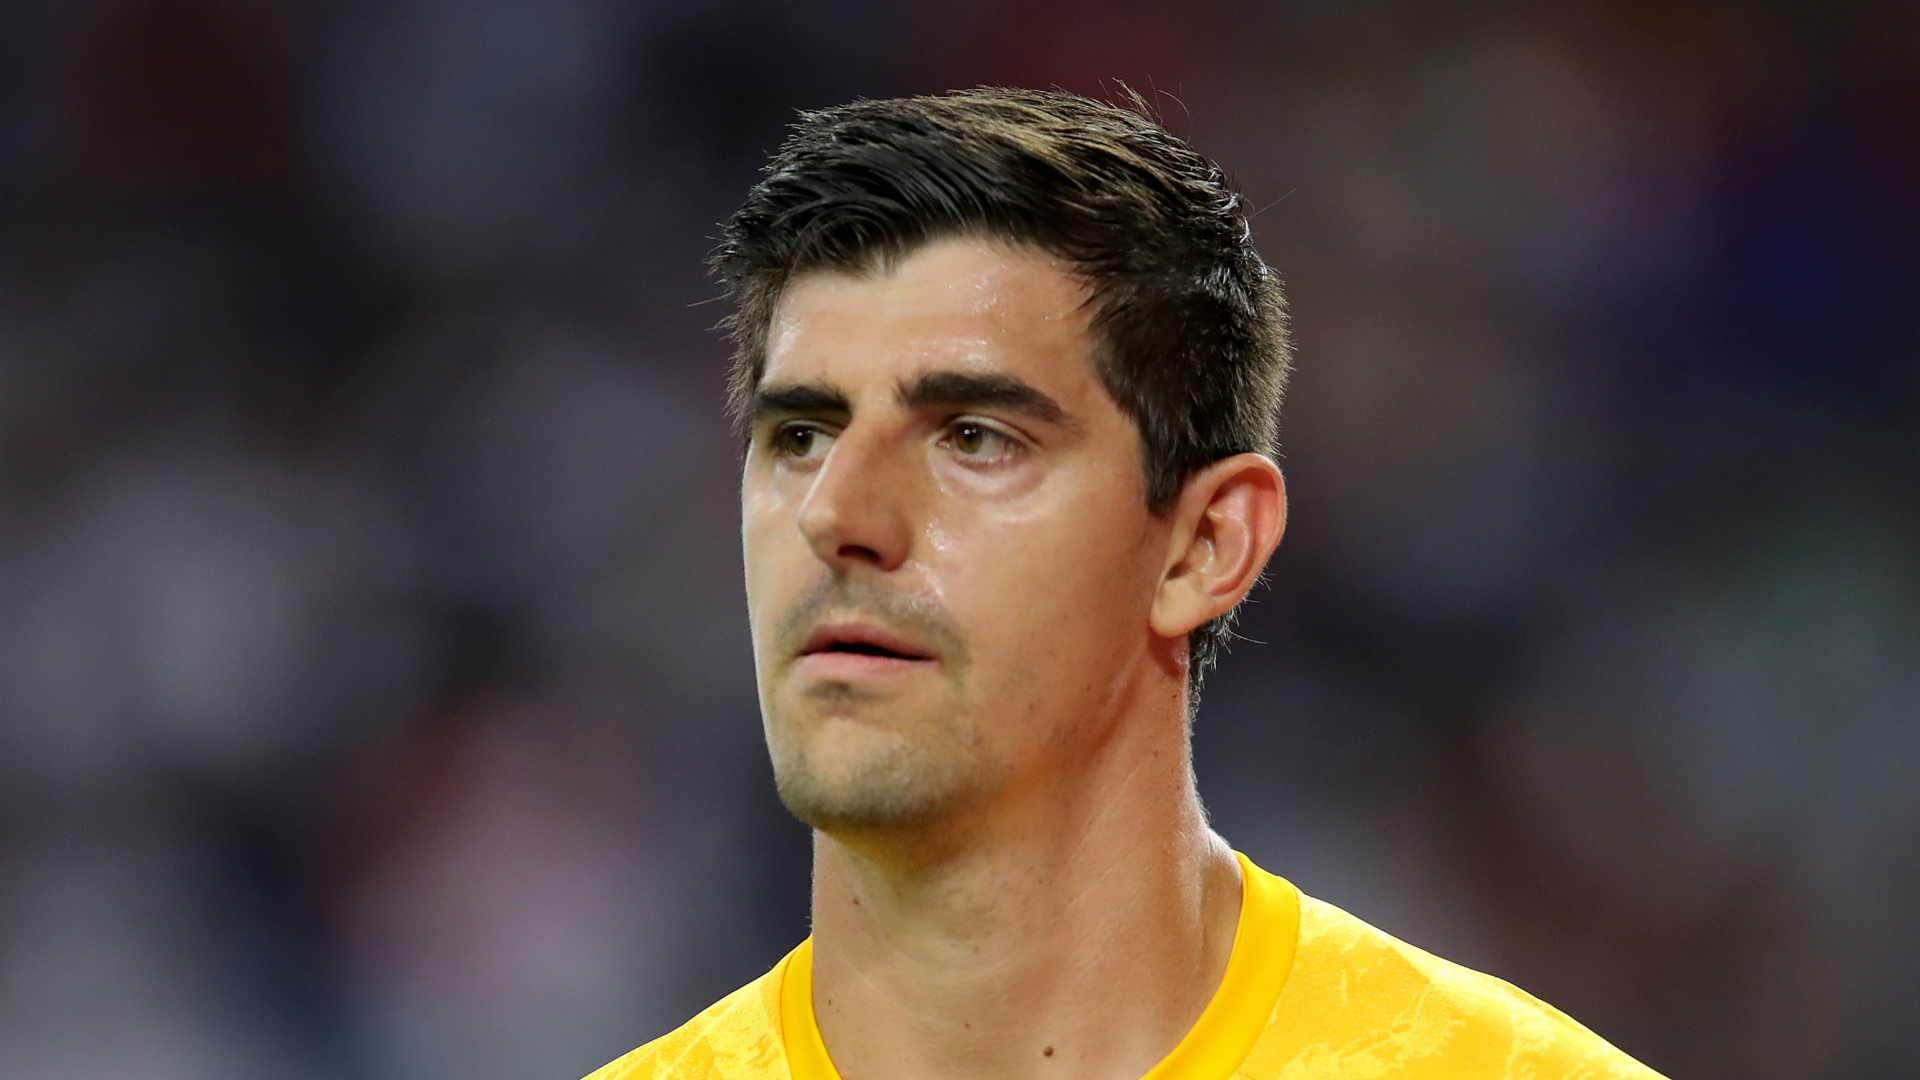 Courtois suffering from 'De Gea syndrome' - Belgium coach backs Real Madrid keeper